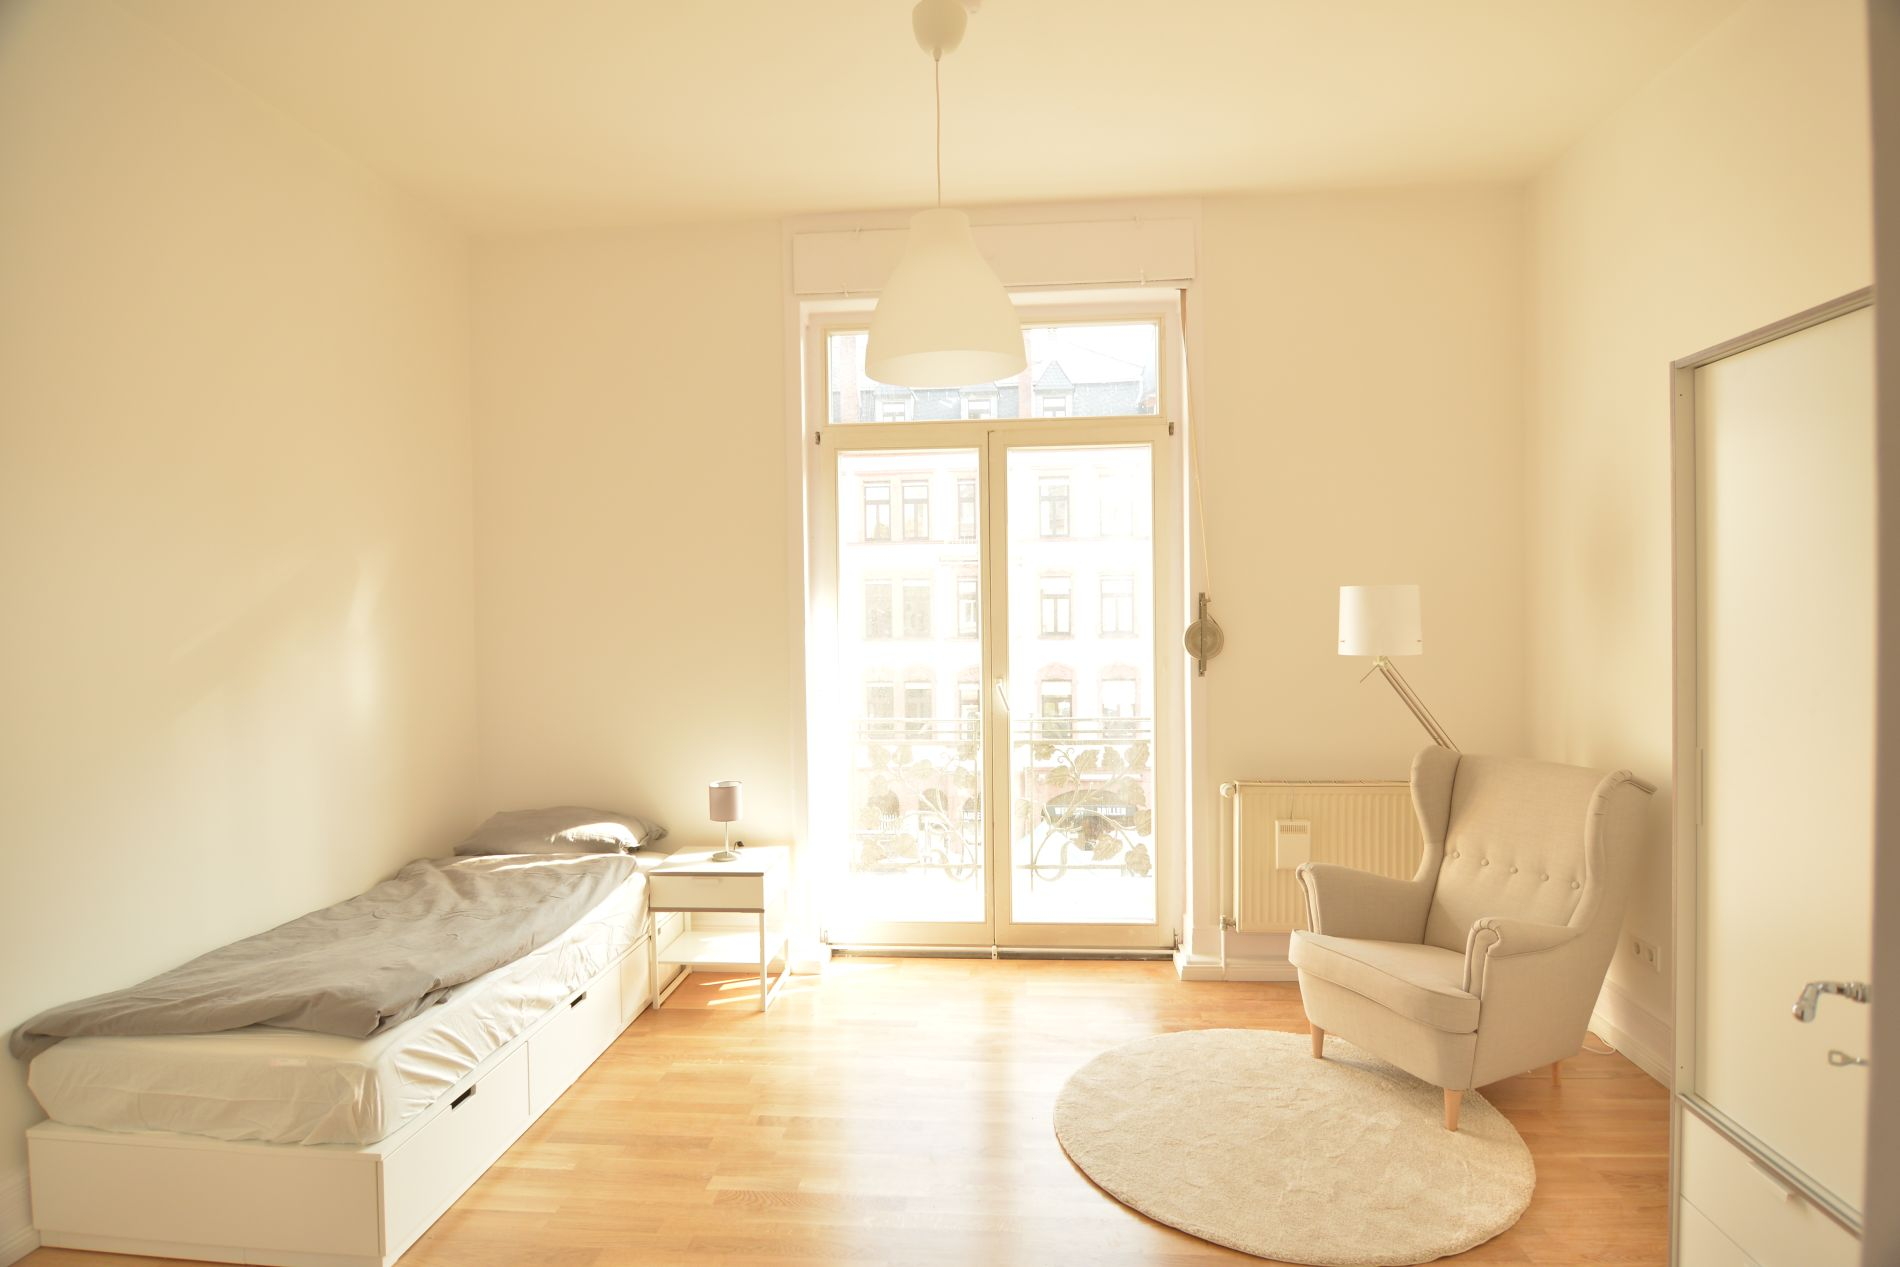 Serviced apartment in Bockenheim, Frankfurt suitable for families with children